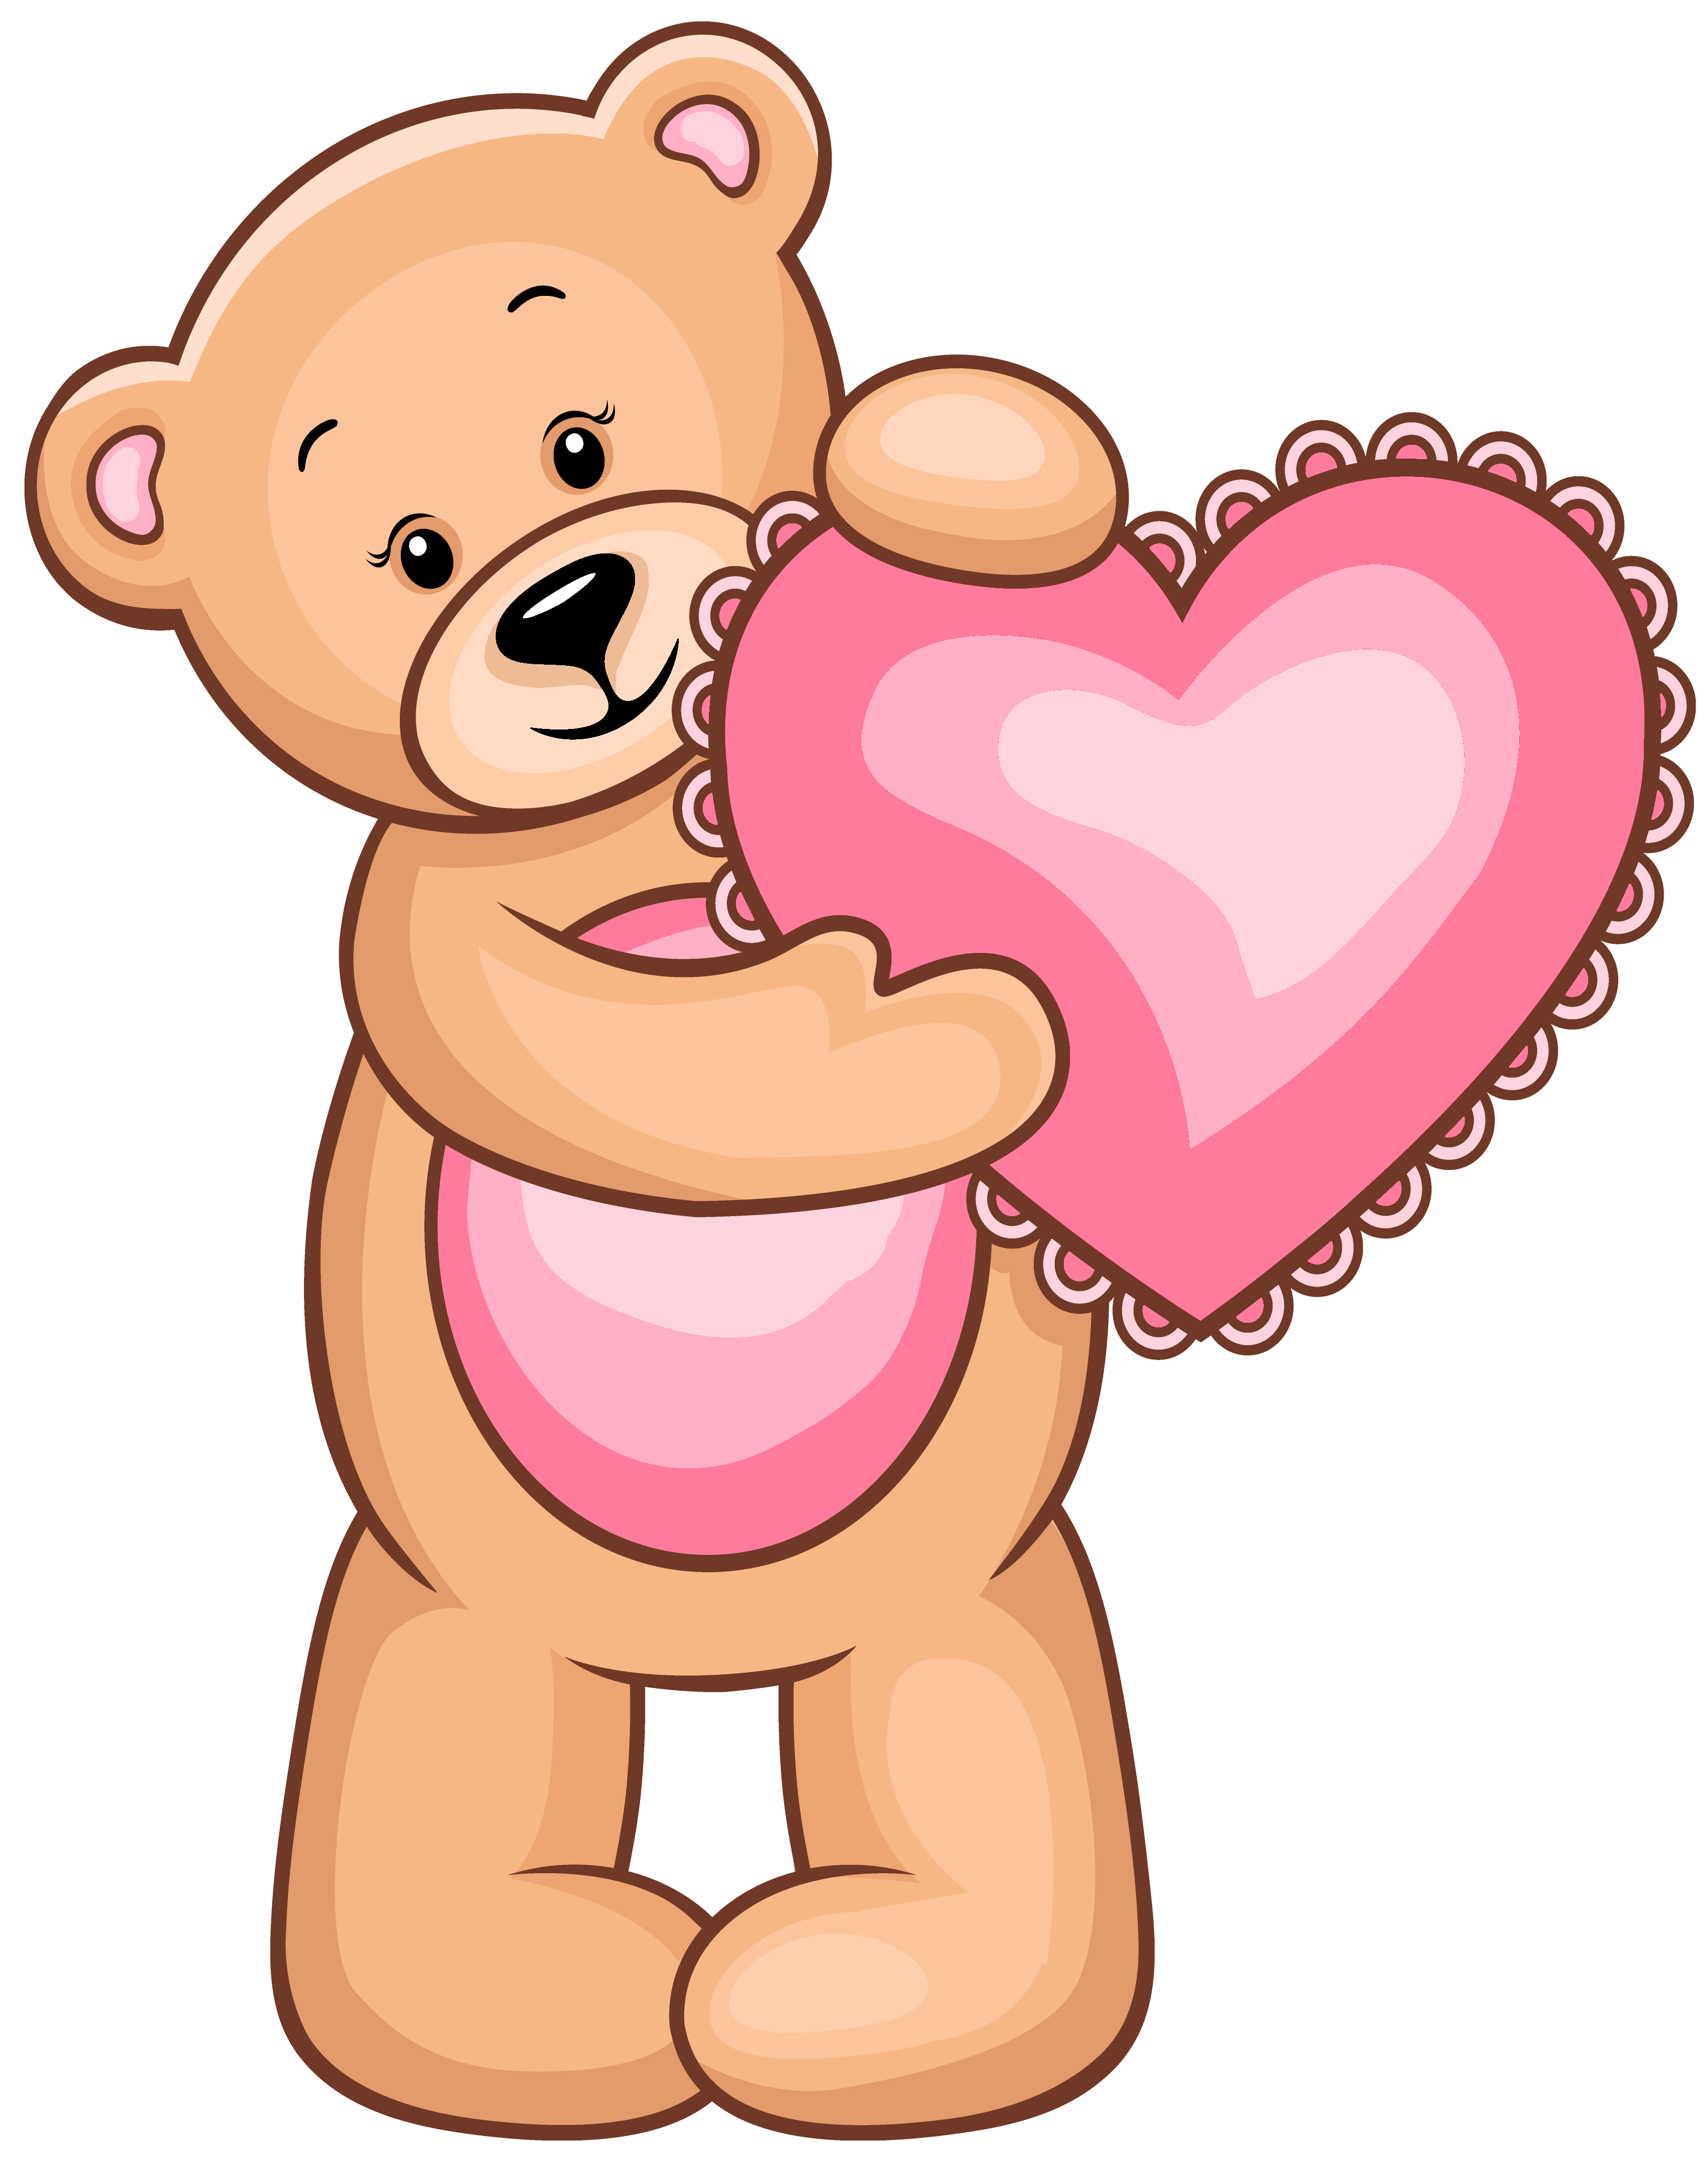 image transparent library Transparent with pink heart. Teddy bear clipart png